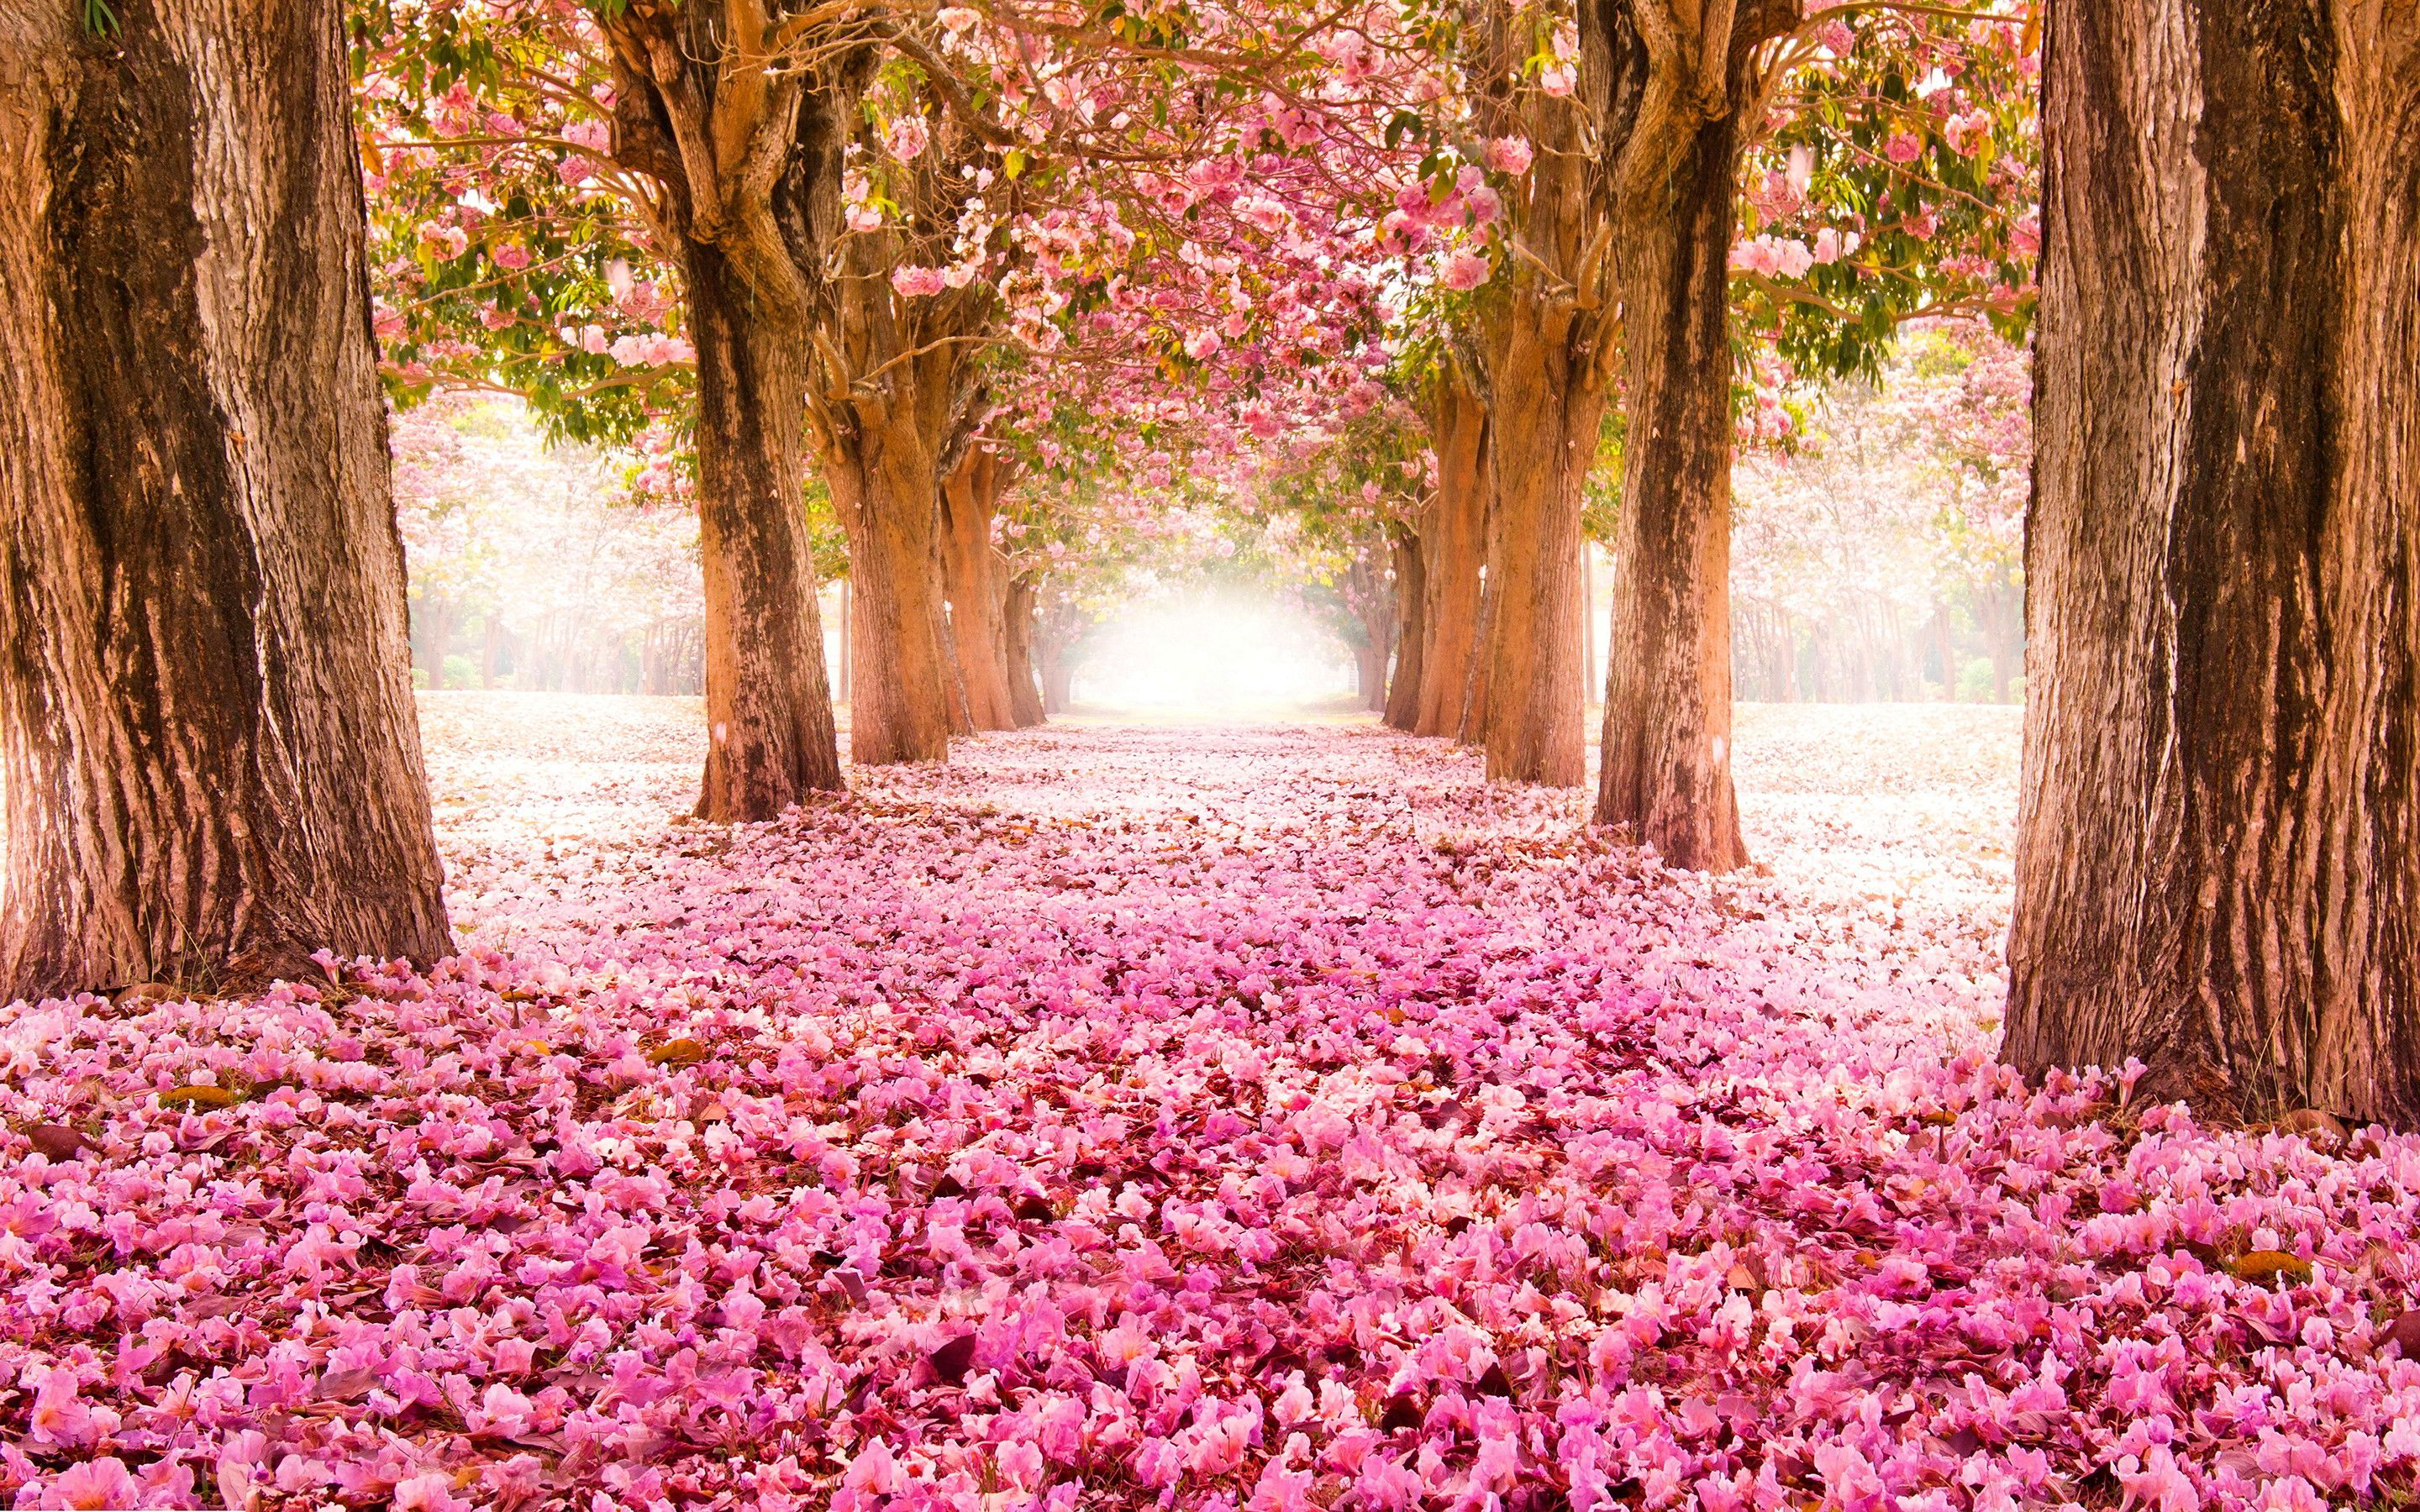 Spring Blooms Cherry Blossoms Spring Flowers Wallpaper Tree Tunnel Blossom Trees